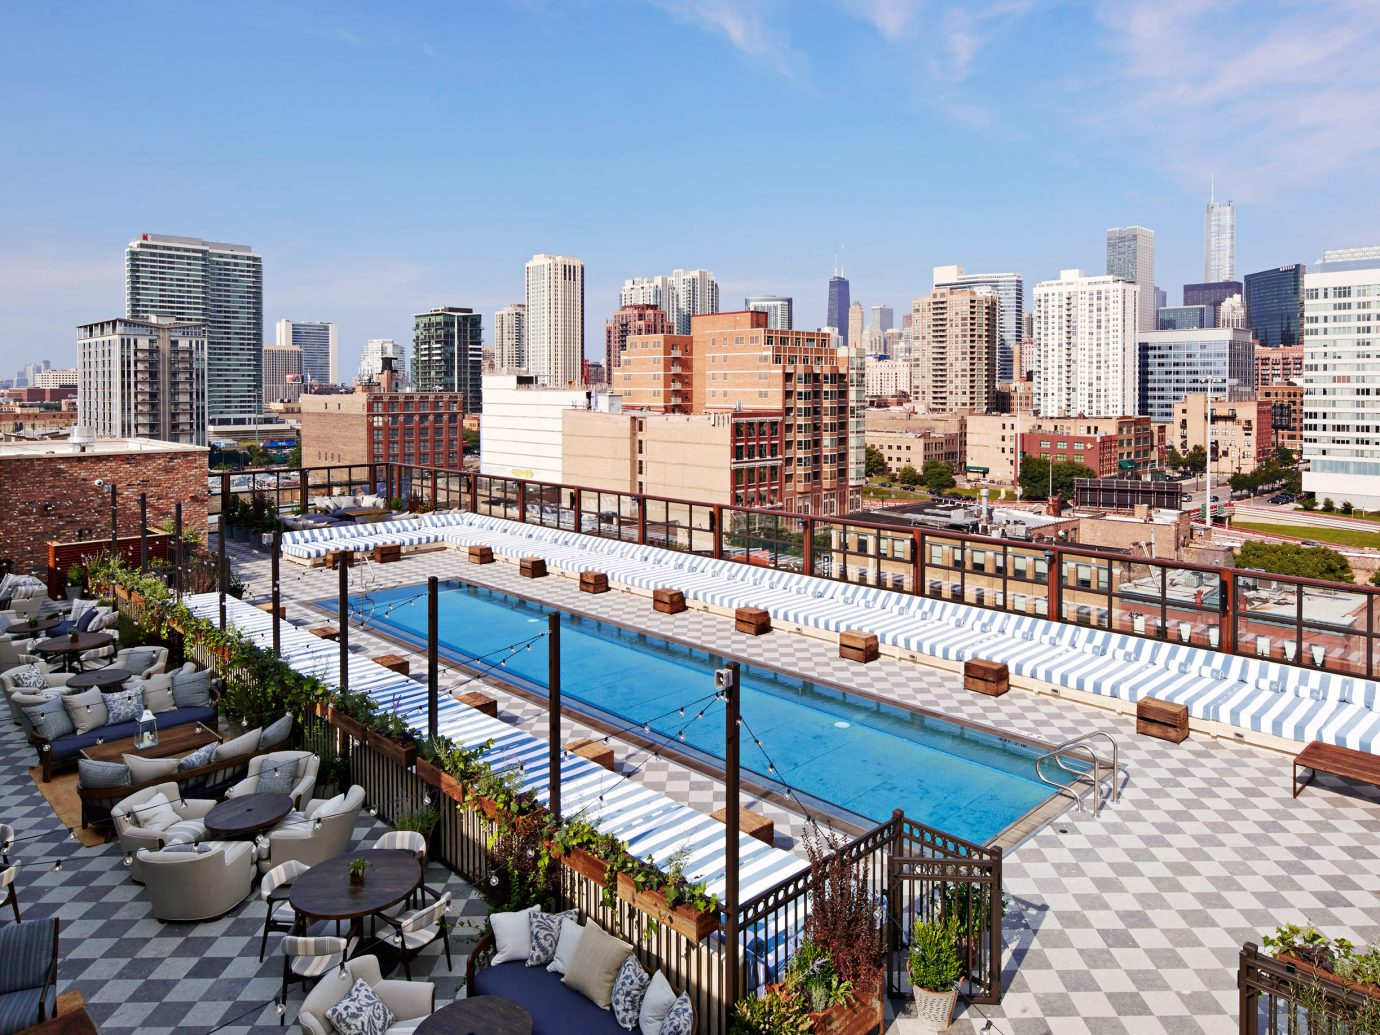 Pool at Soho House Chicago